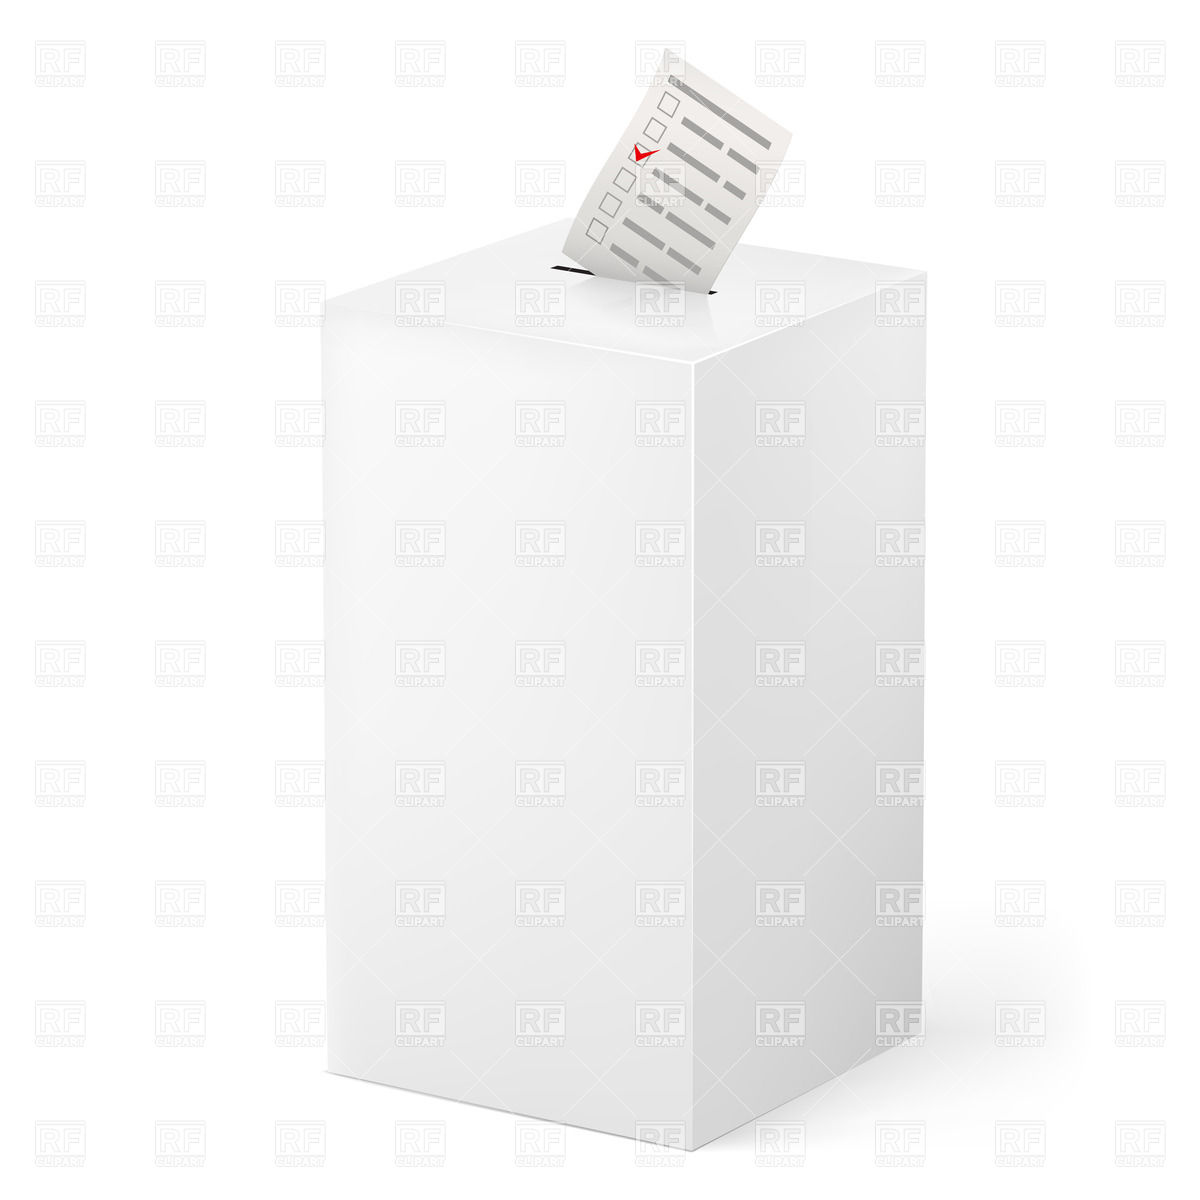 Voting Ballot Box Clip Art